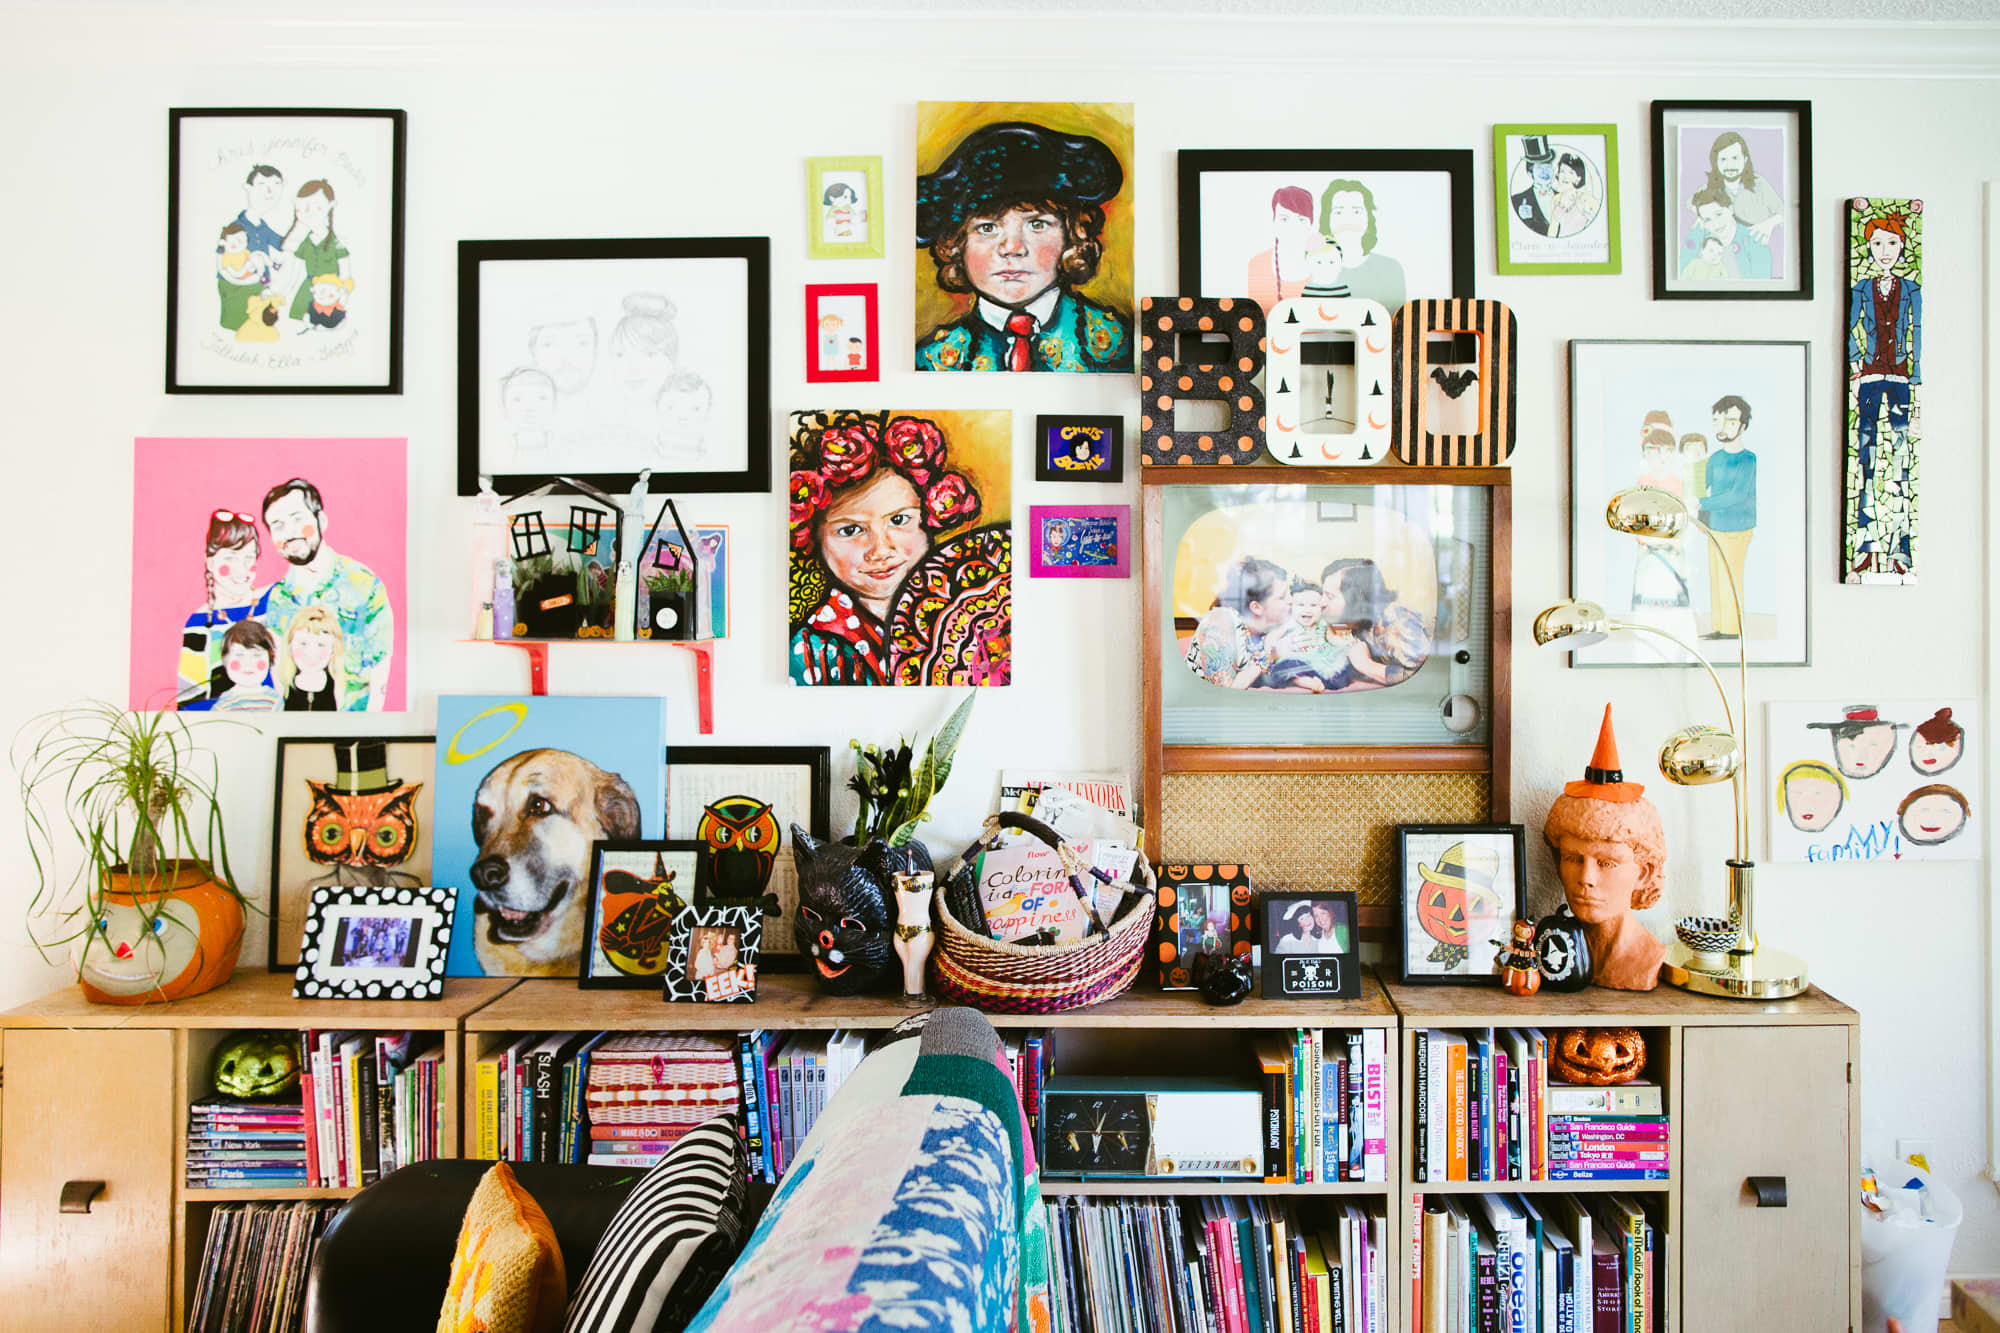 House Tour: A Wall-to-wall Halloween Decorated House